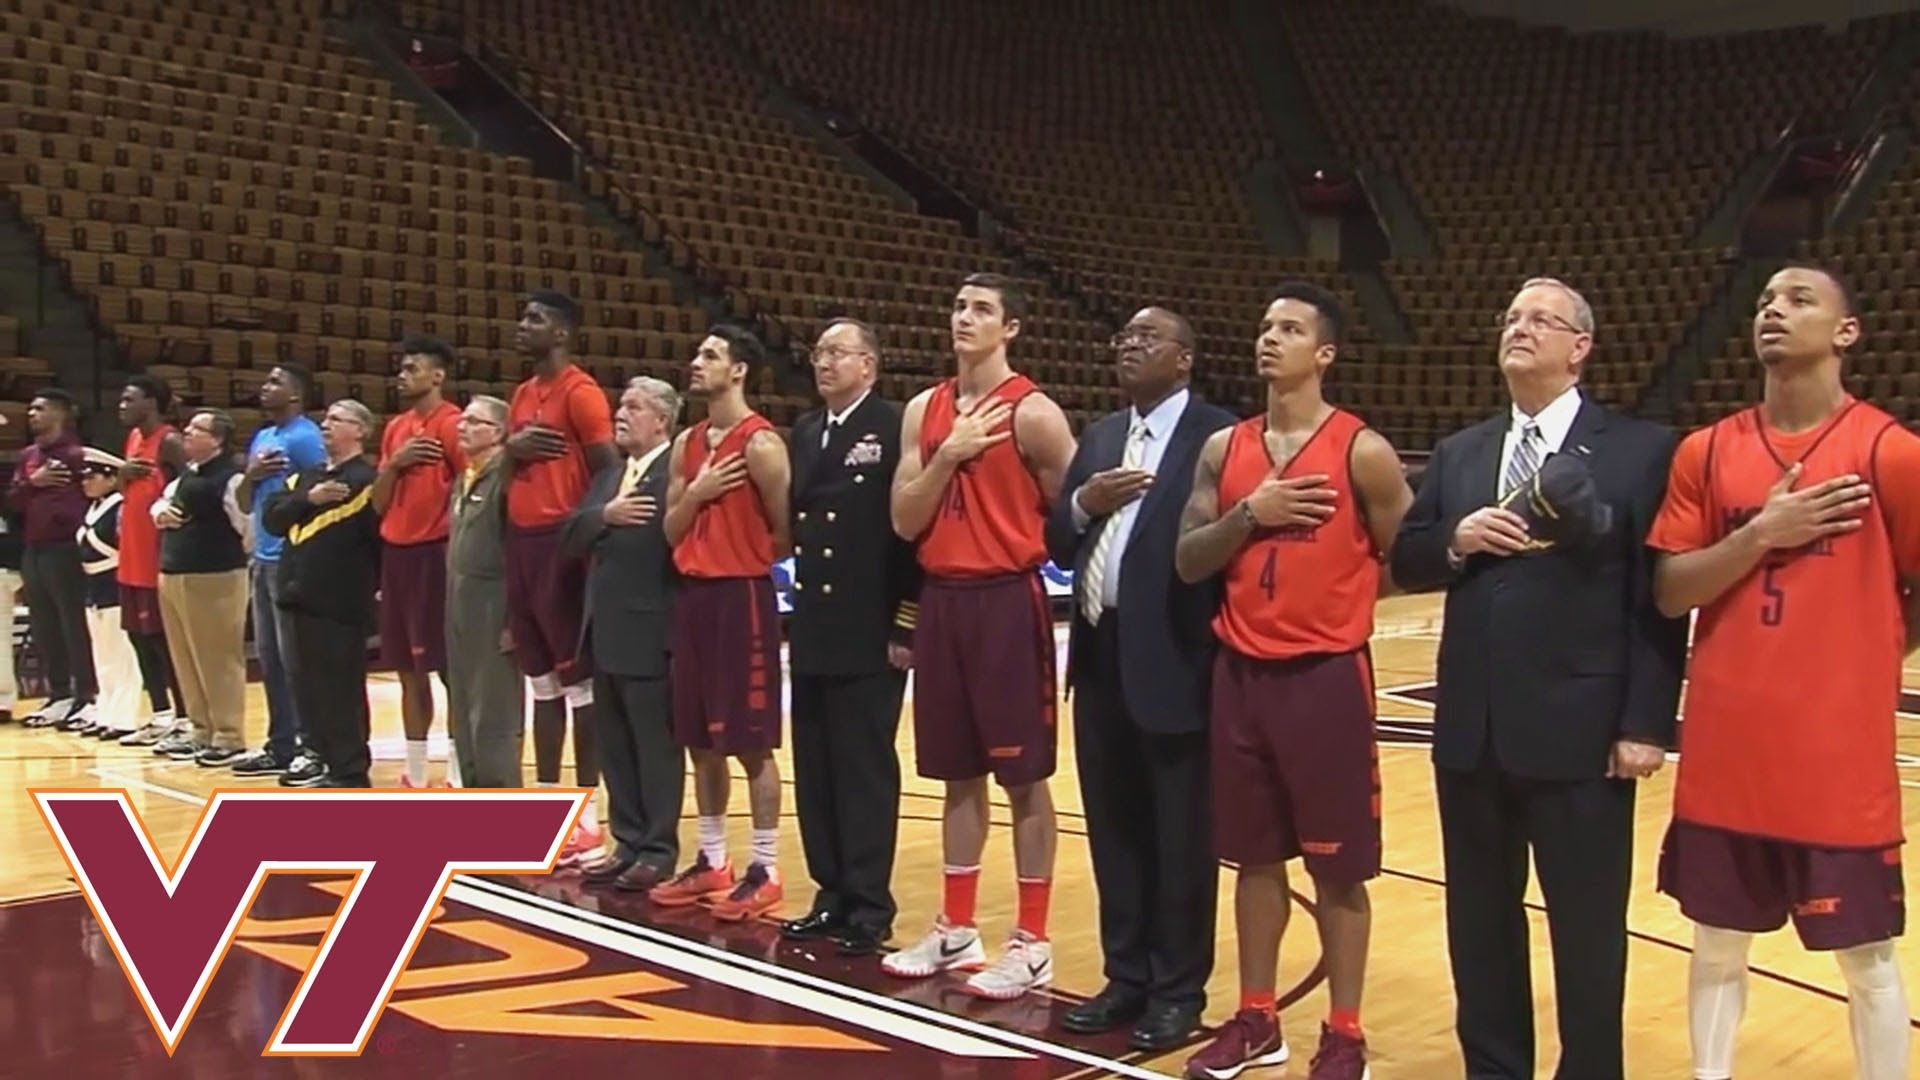 Buzz Williams and the Virginia Tech Men's Basketball team